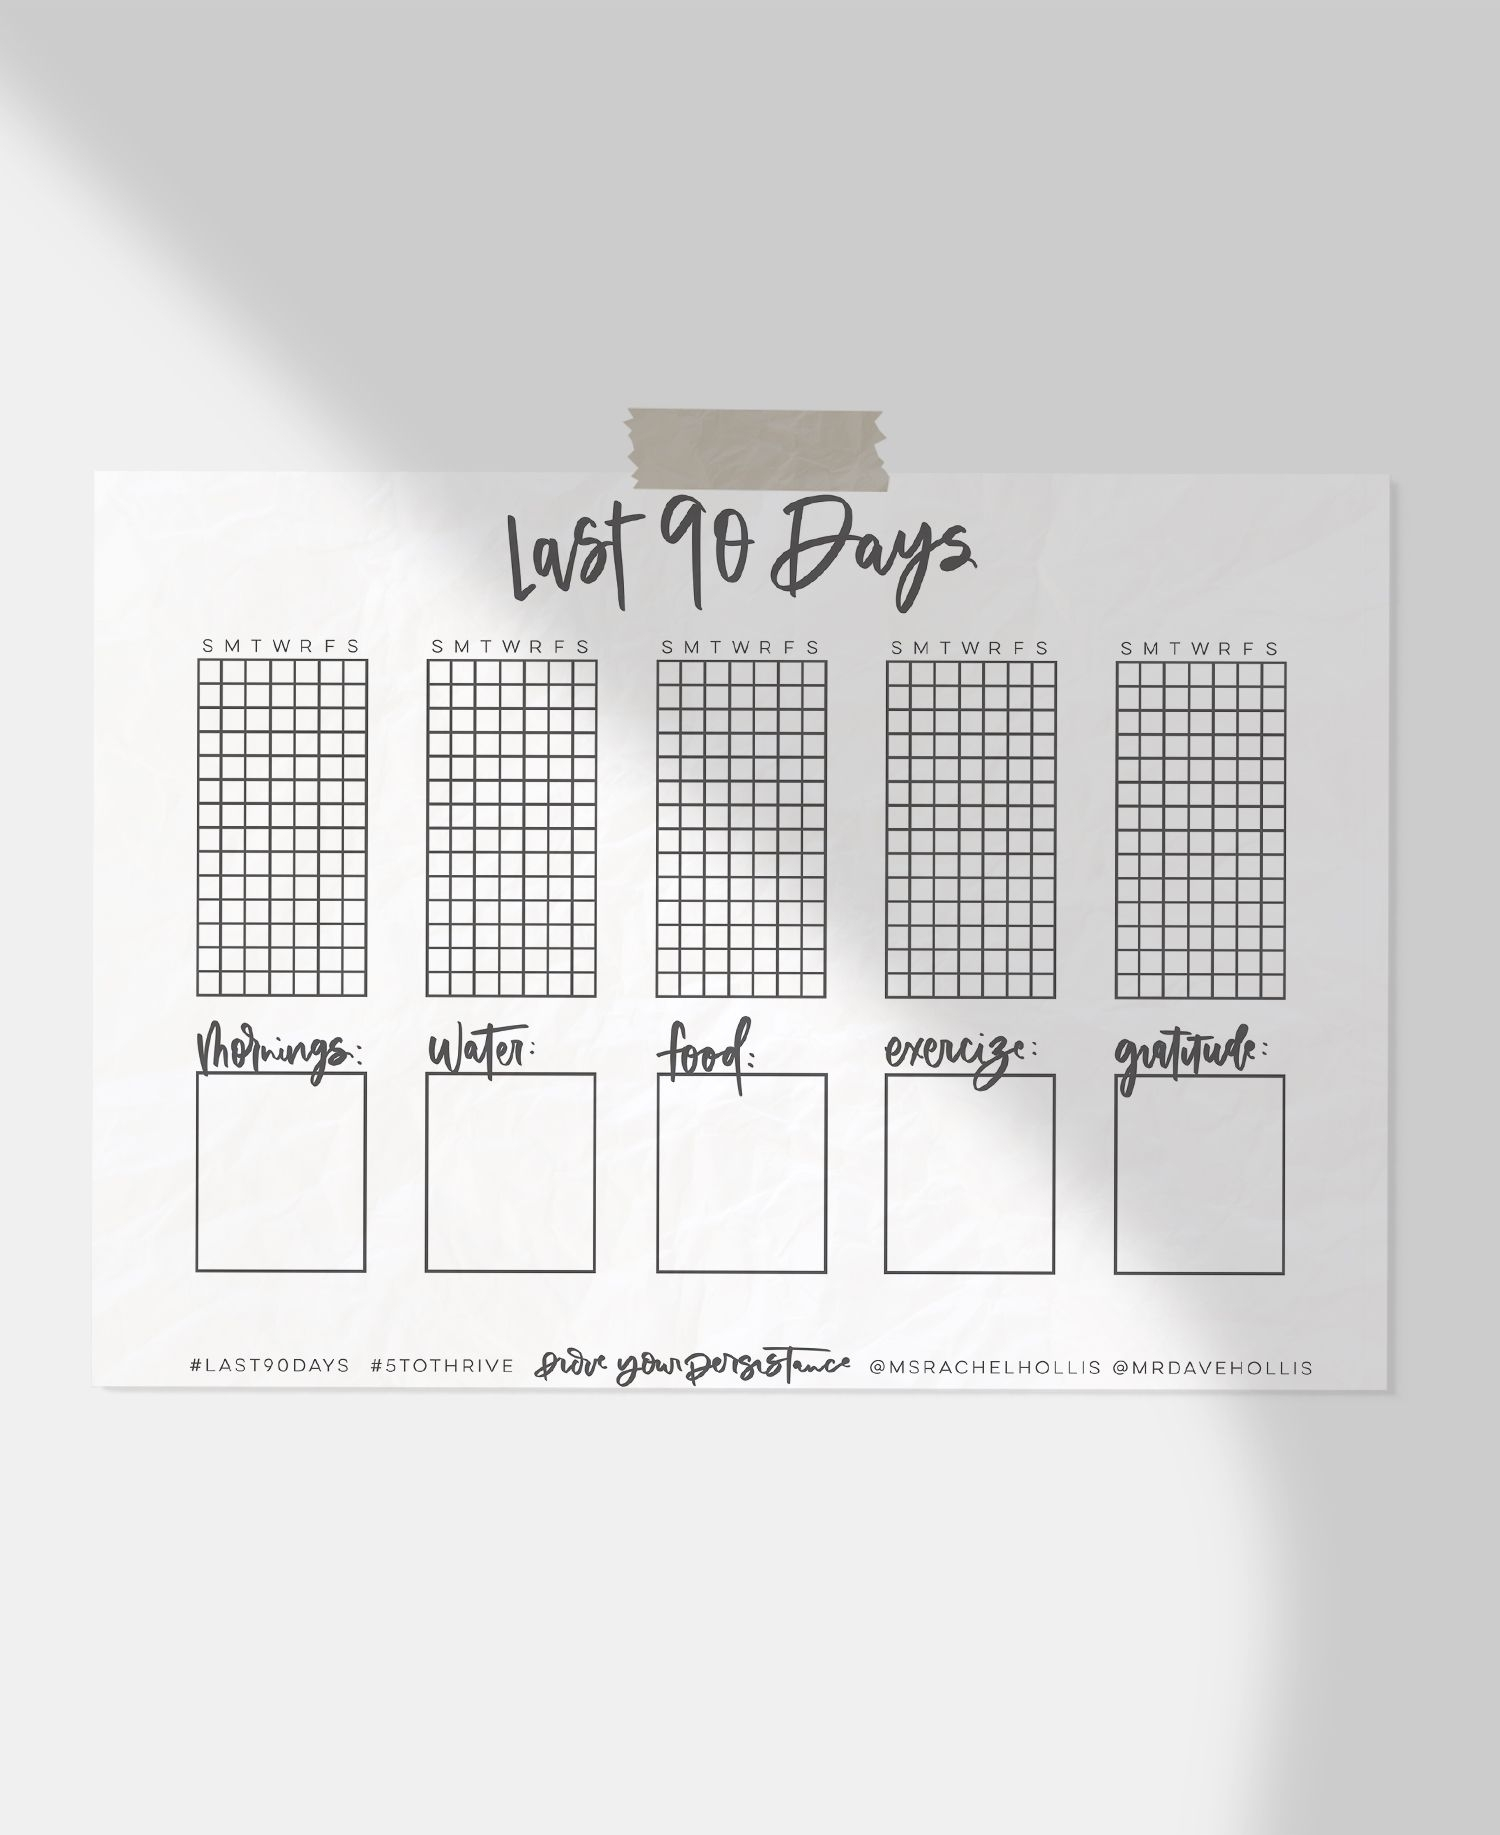 Free Printable Last 90 Days Tracker - Lemon Thistle